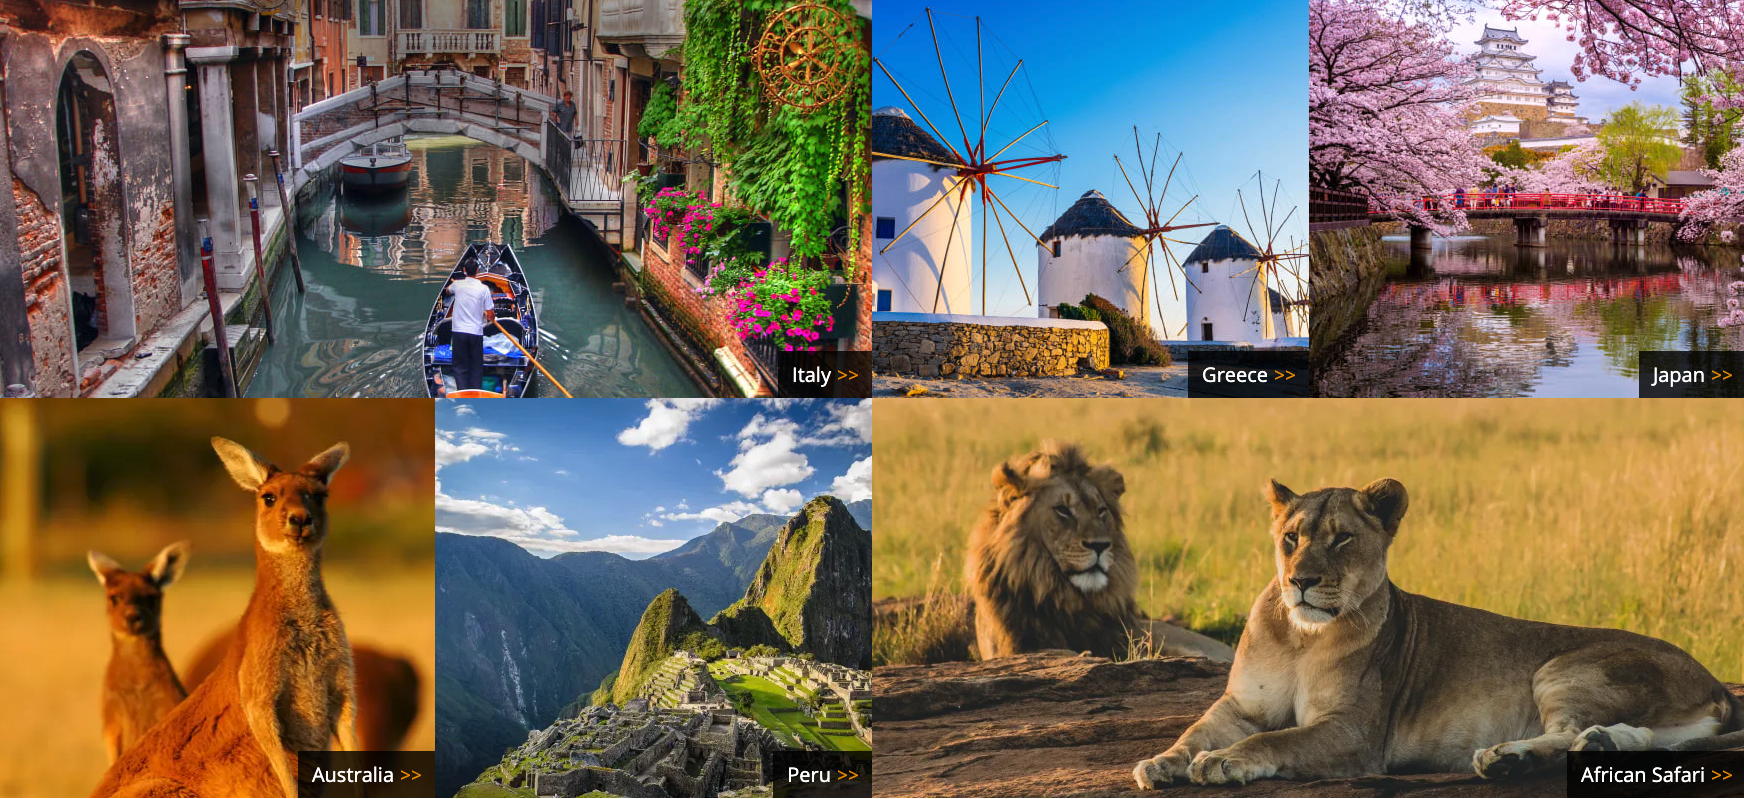 Responsive image grid highlighting areas of travel on Zicasso's homepage